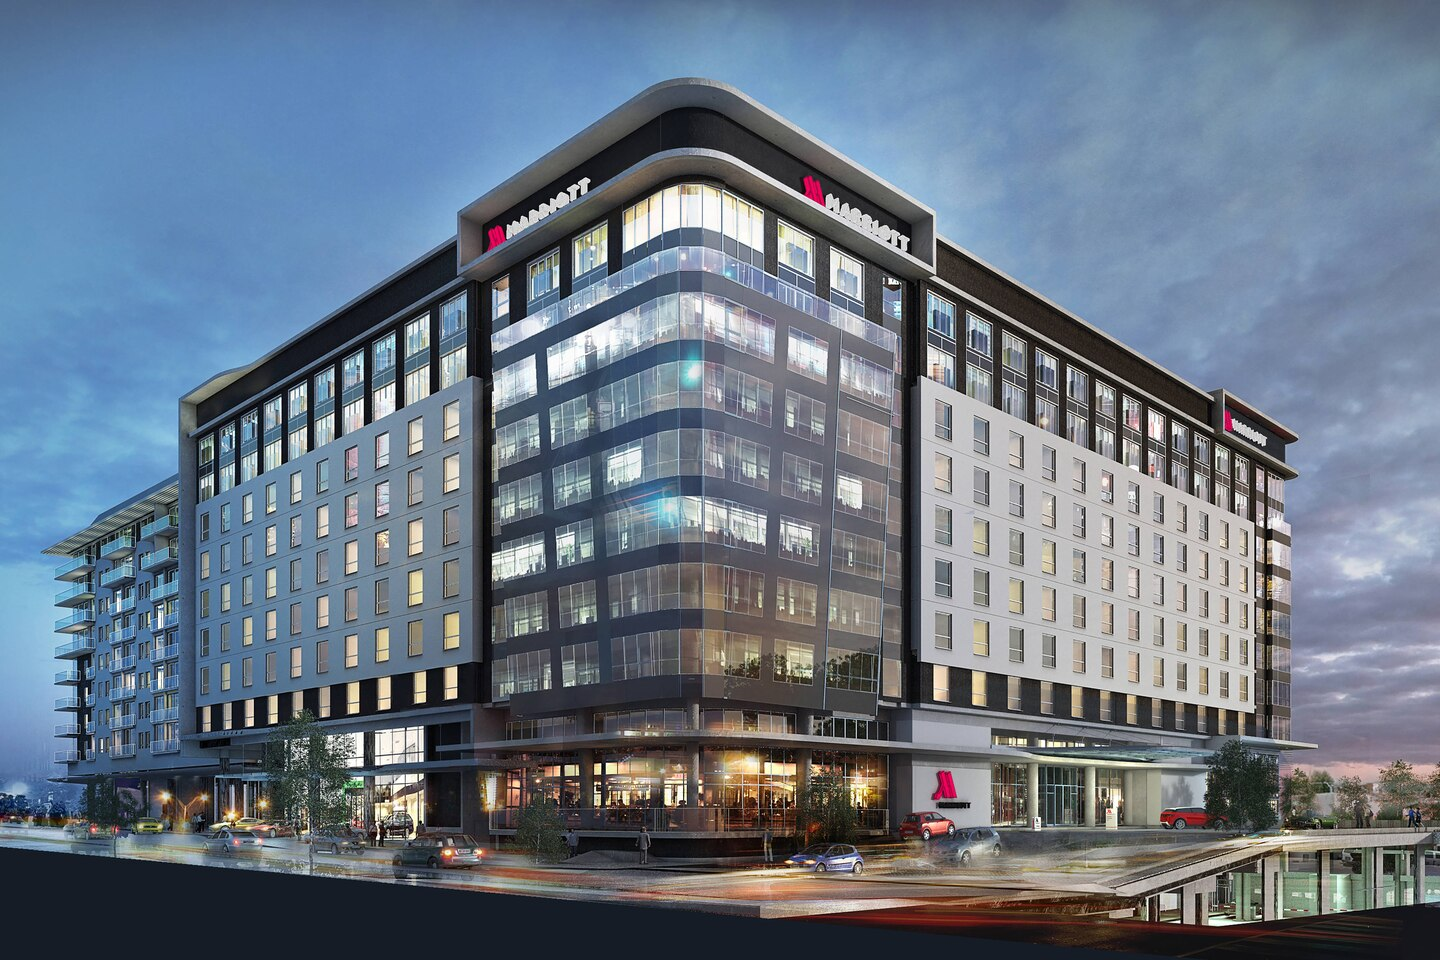 Marriott hails dual property openings in Johannesburg [Construction report]